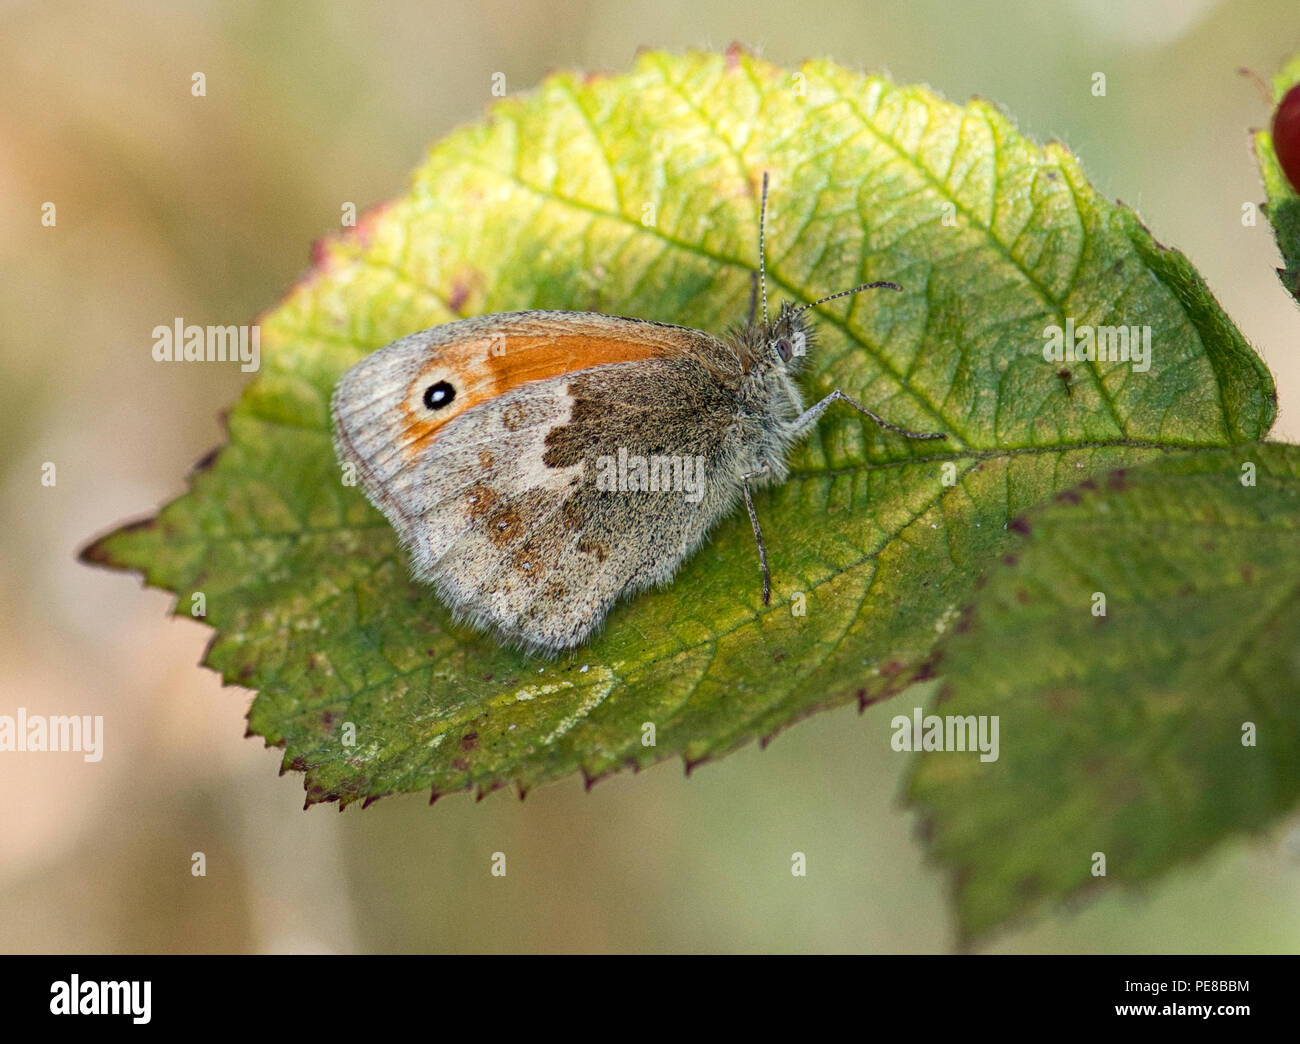 Small heath (Coenonympha pamphilus), underside of adult butterfly. - Stock Image